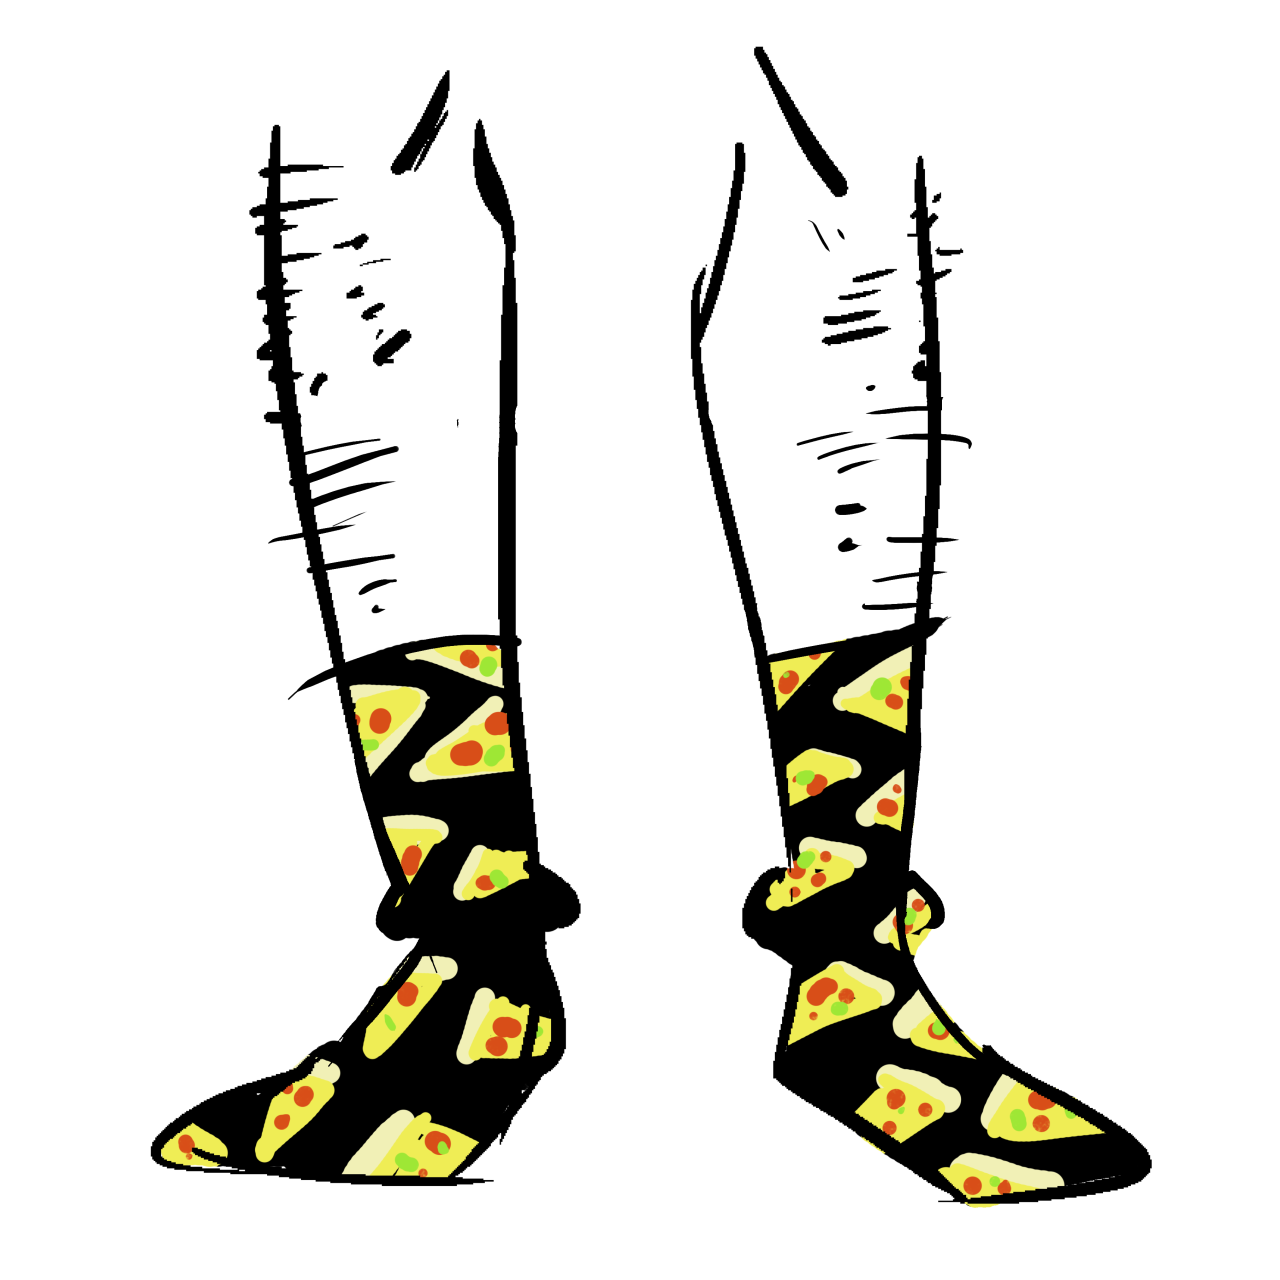 Black socks with slices of pepperoni pizza as a pattern